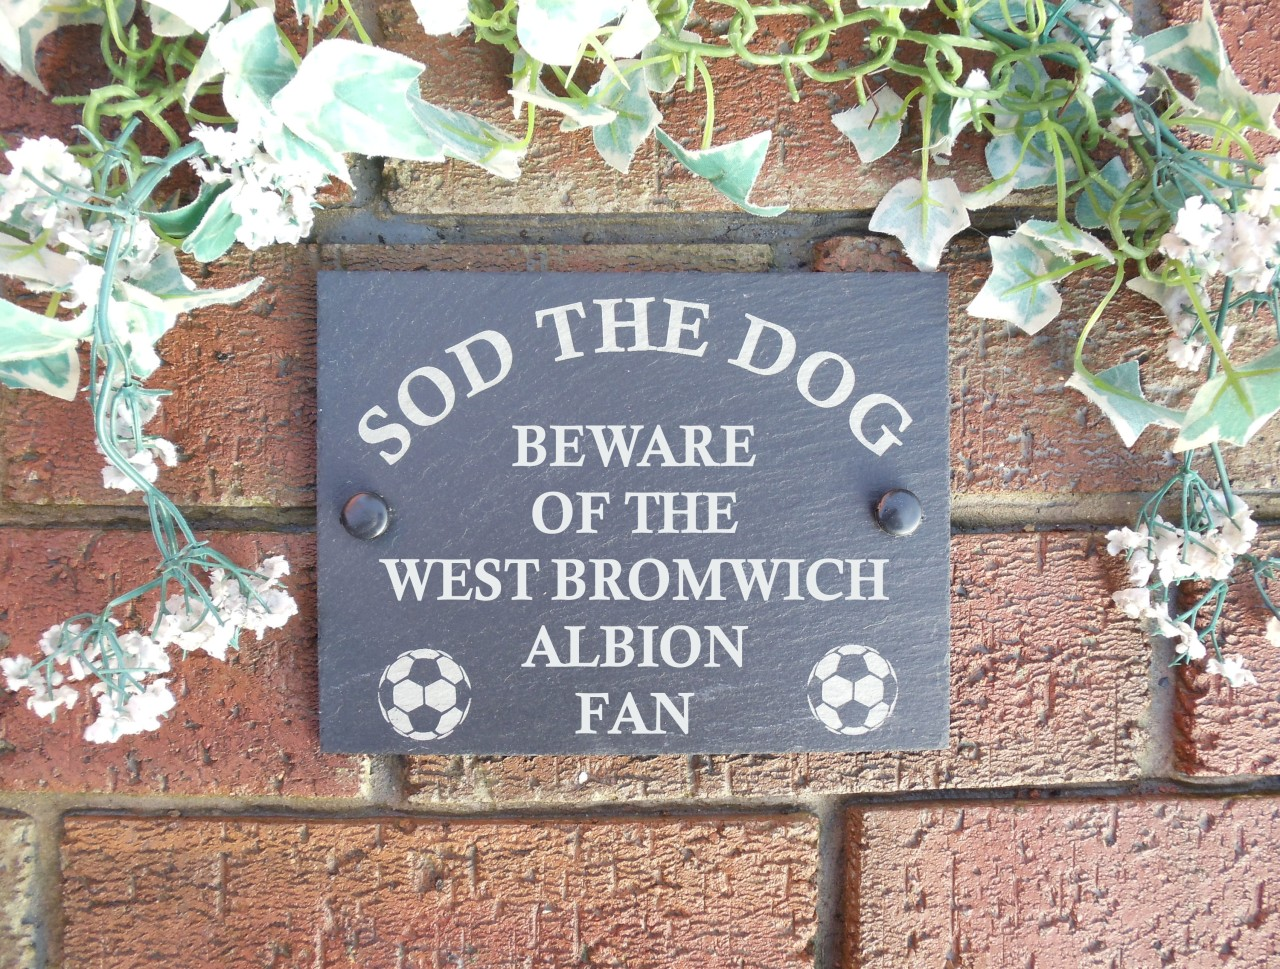 Sod-The-Dog-Football-Fan-Slate-Wall-Door-Sign-Plaque-Ideal-Gifts-As-Of-2012